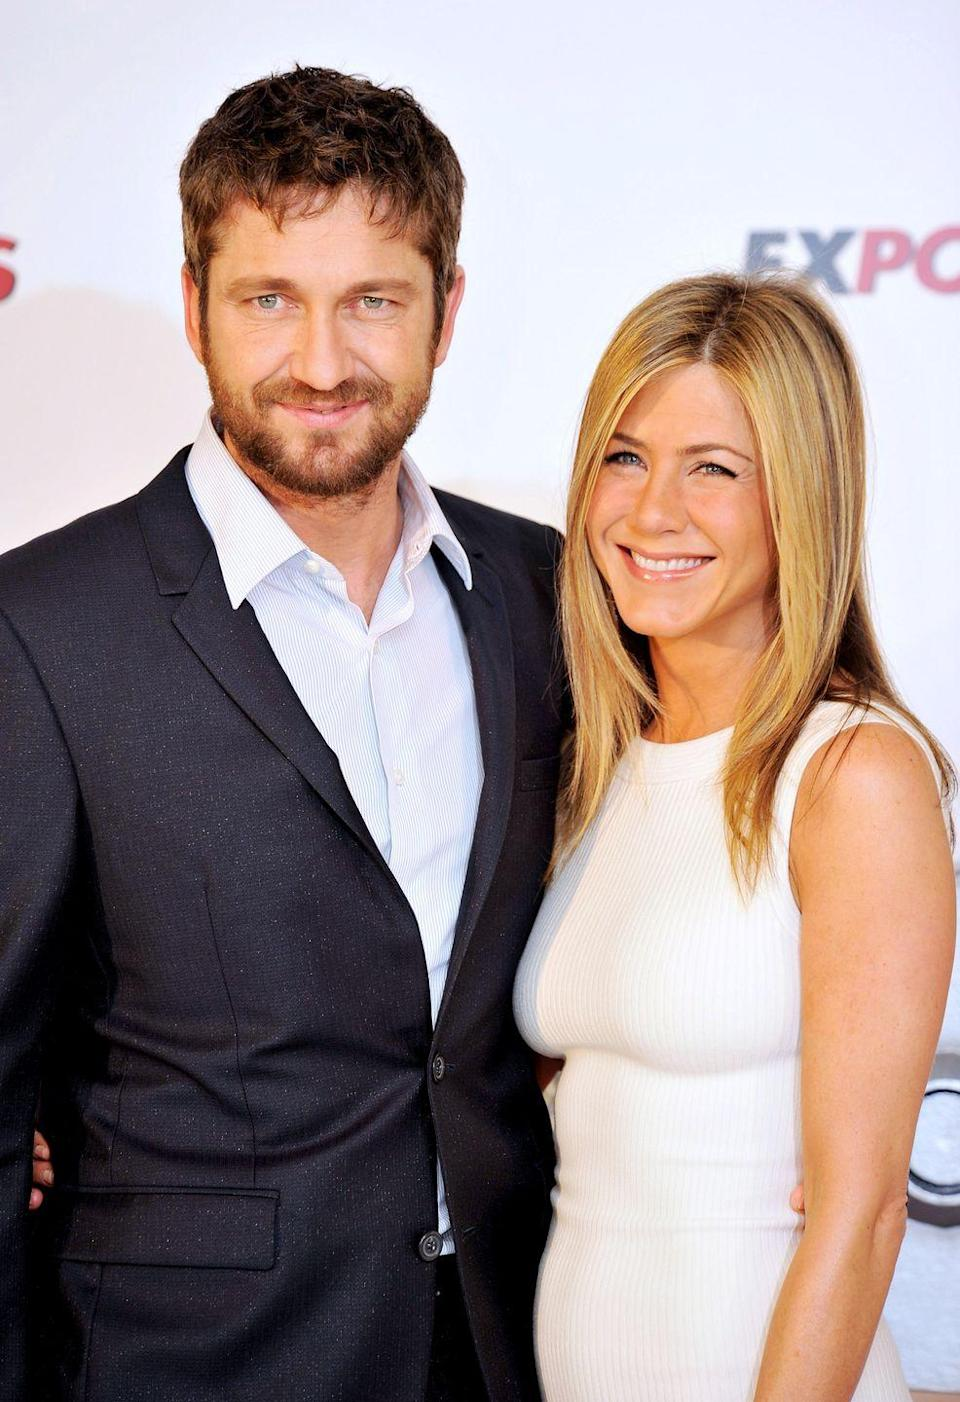 <p>Dating rumors about Jen and Gerard Butler topped headlines when the pair starred in the 2010 film <em>The Bounty Hunter</em>. Their chemistry is undeniable and their banter was spot-on. Also, they look <em>so hot </em>together.  <br></p>